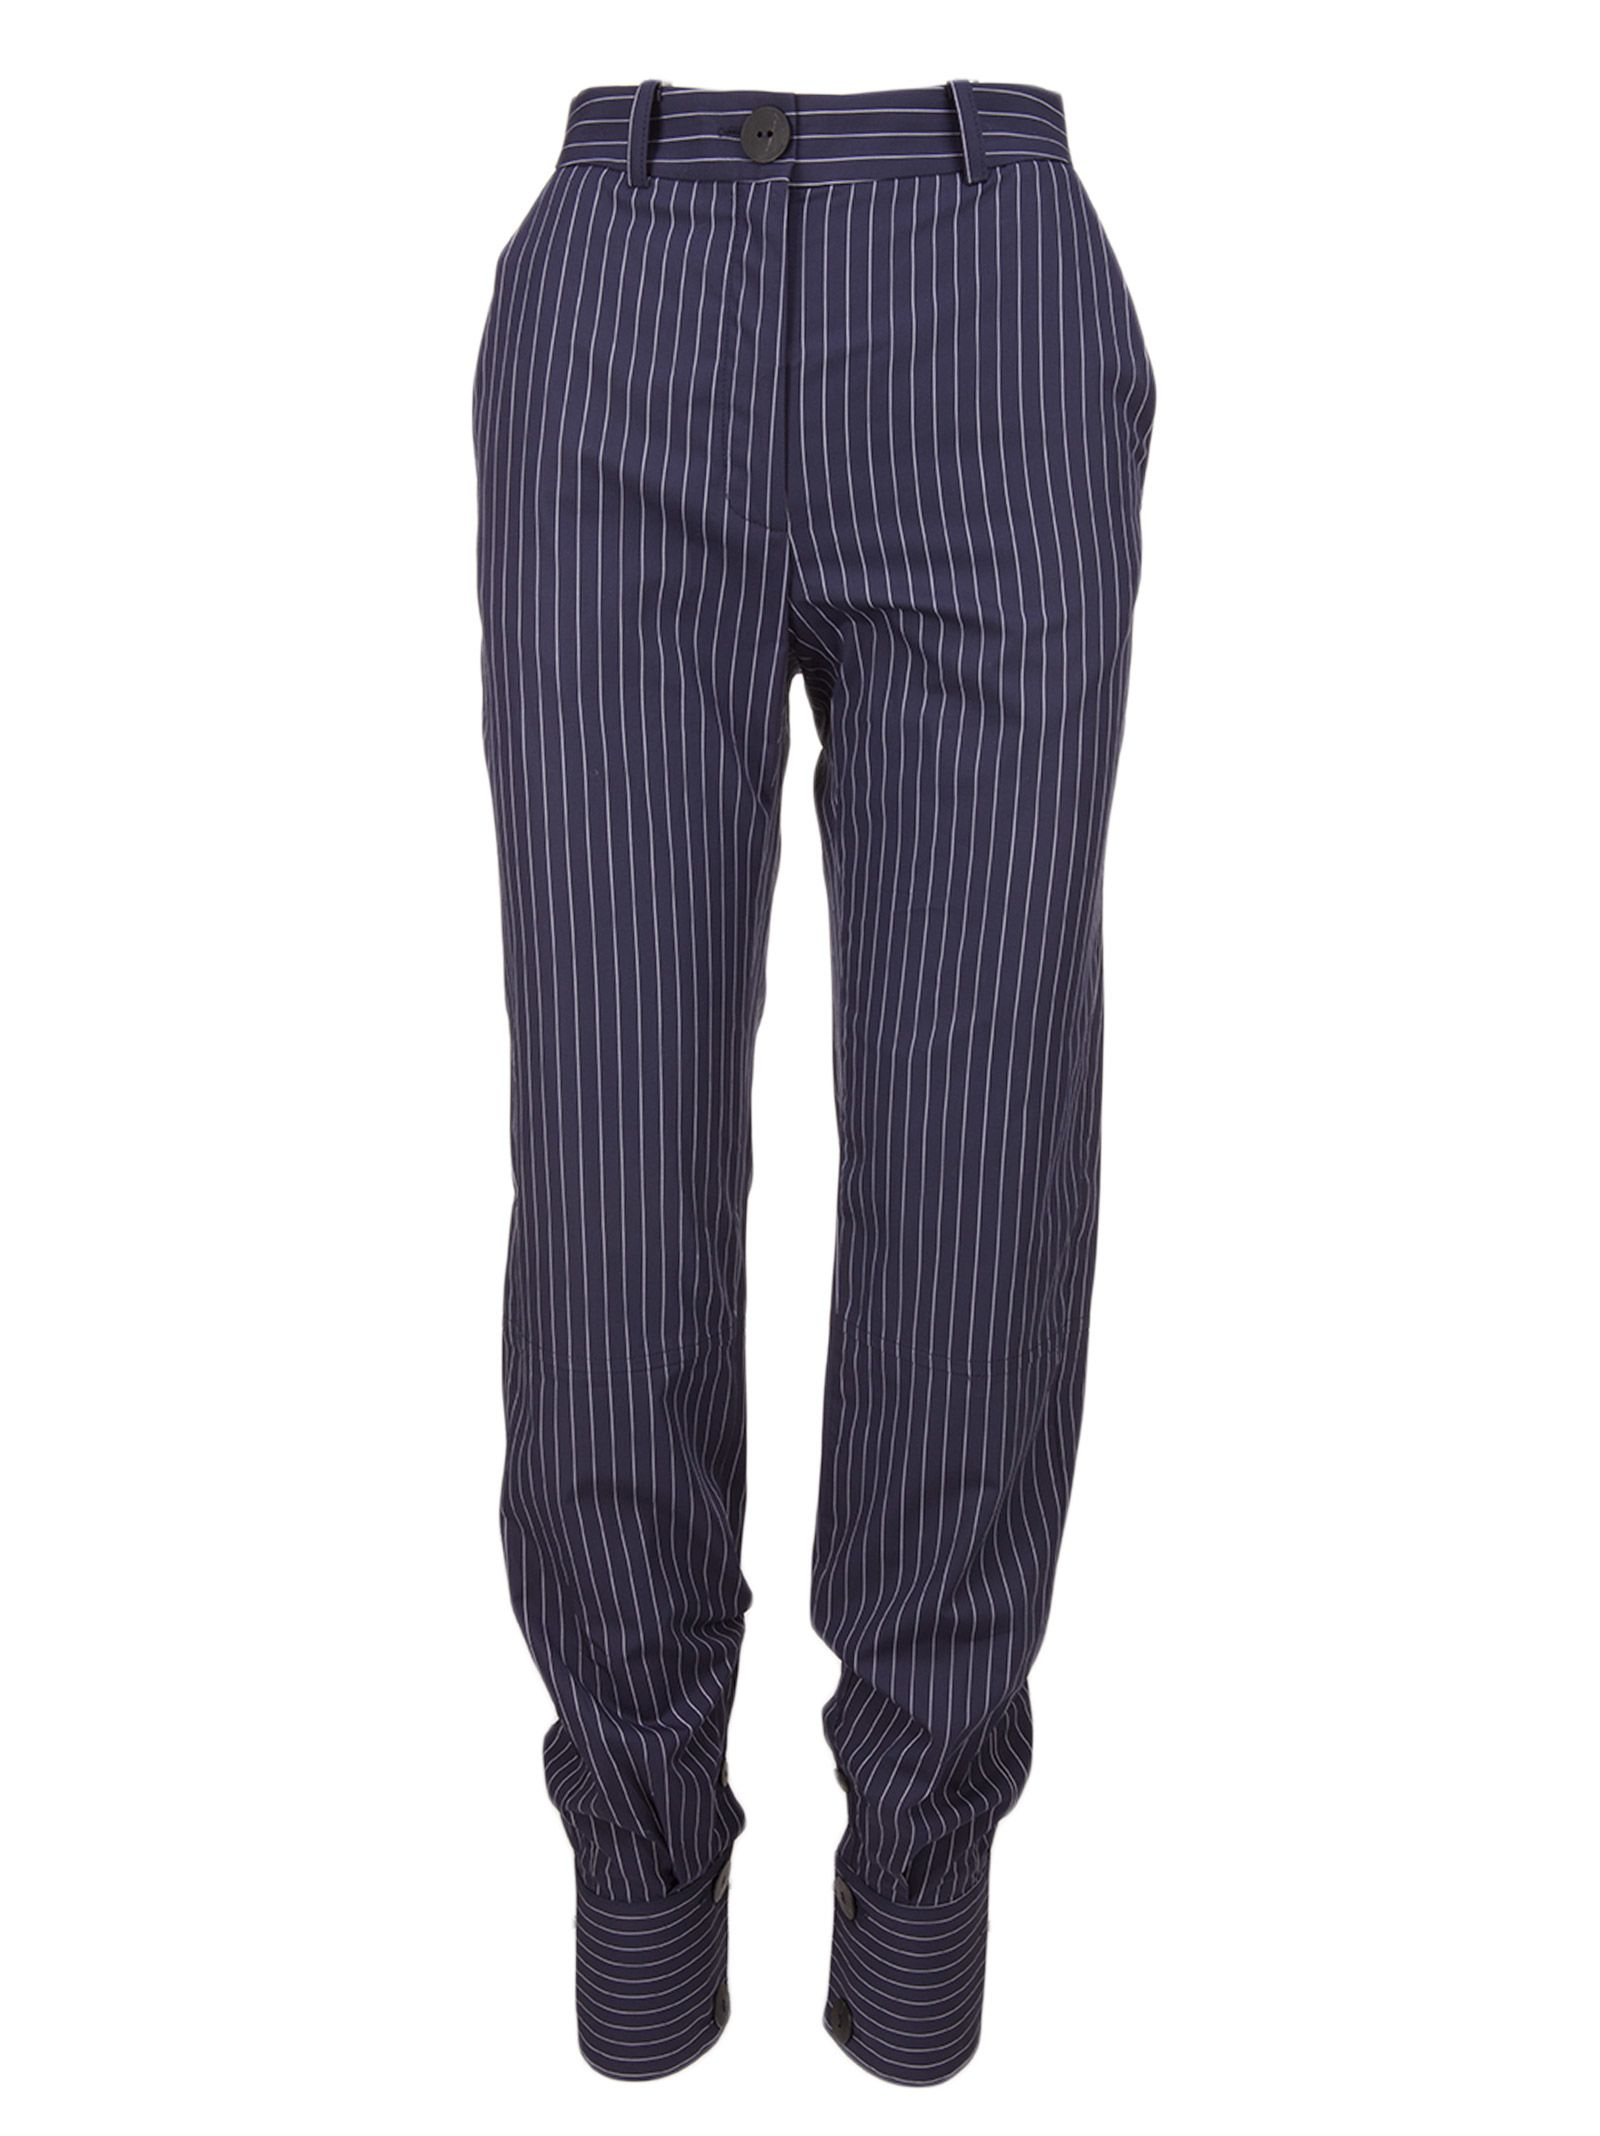 J.w Anderson Trousers